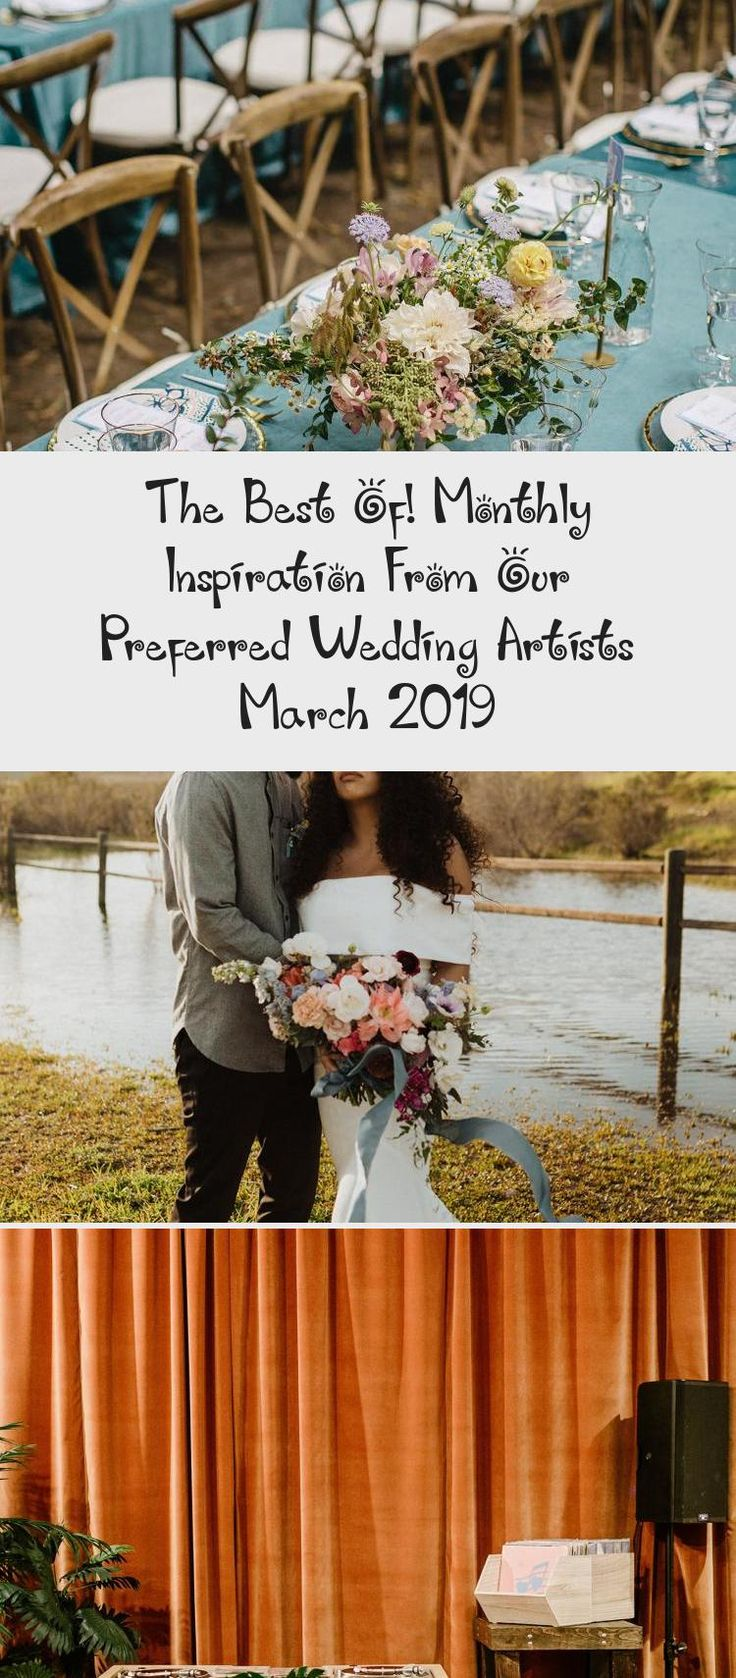 The Best Of! Monthly Inspiration from our Preferred Wedding Artists March 2019 - Green Wedding Shoes #Outdoorgardenwedding #gardenweddingBouquet #Fairytalegardenwedding #gardenweddingMarquee #Bohogardenwedding